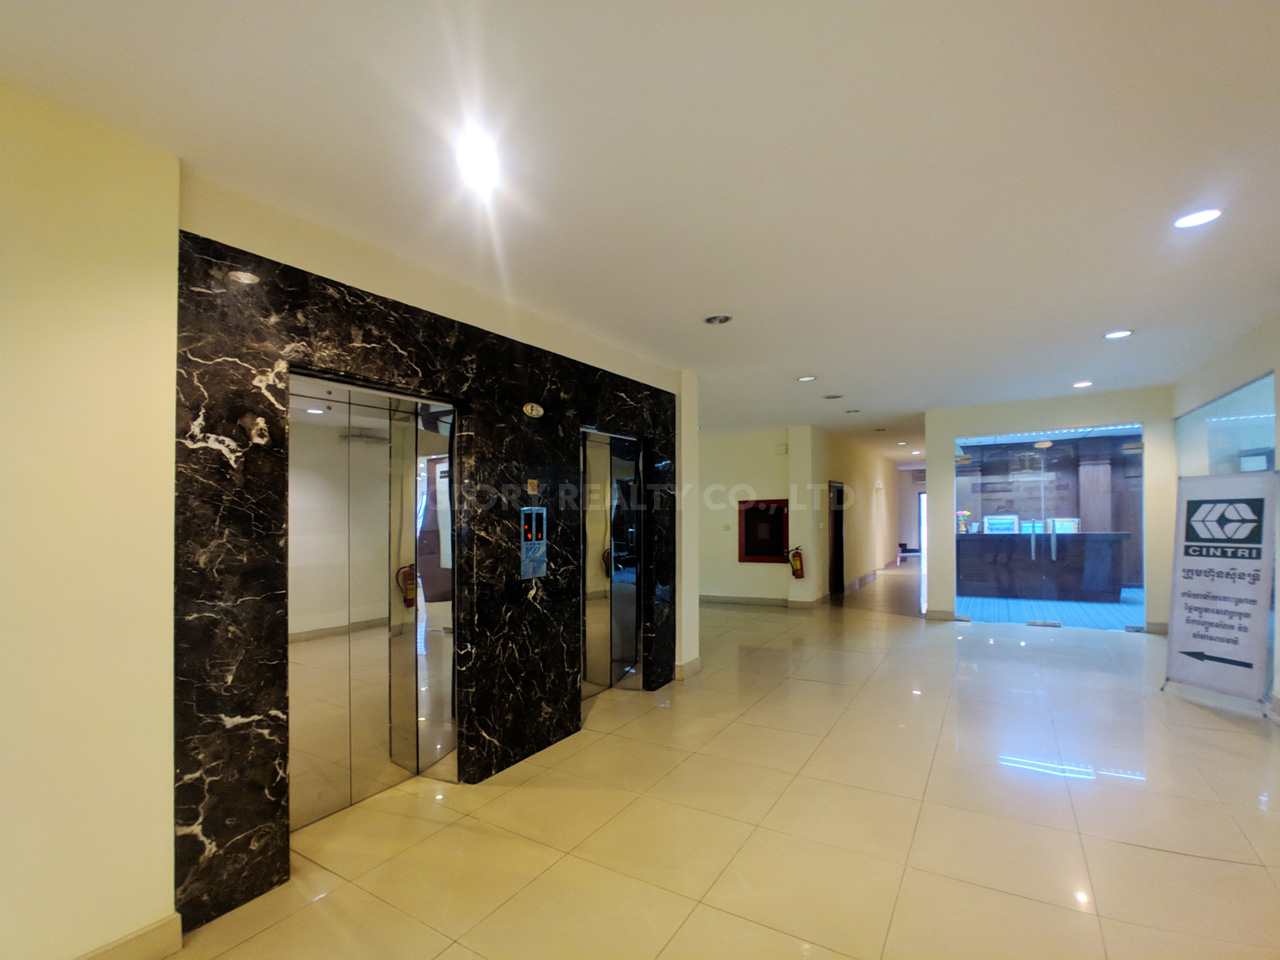 176 SQM office space for rent near central market